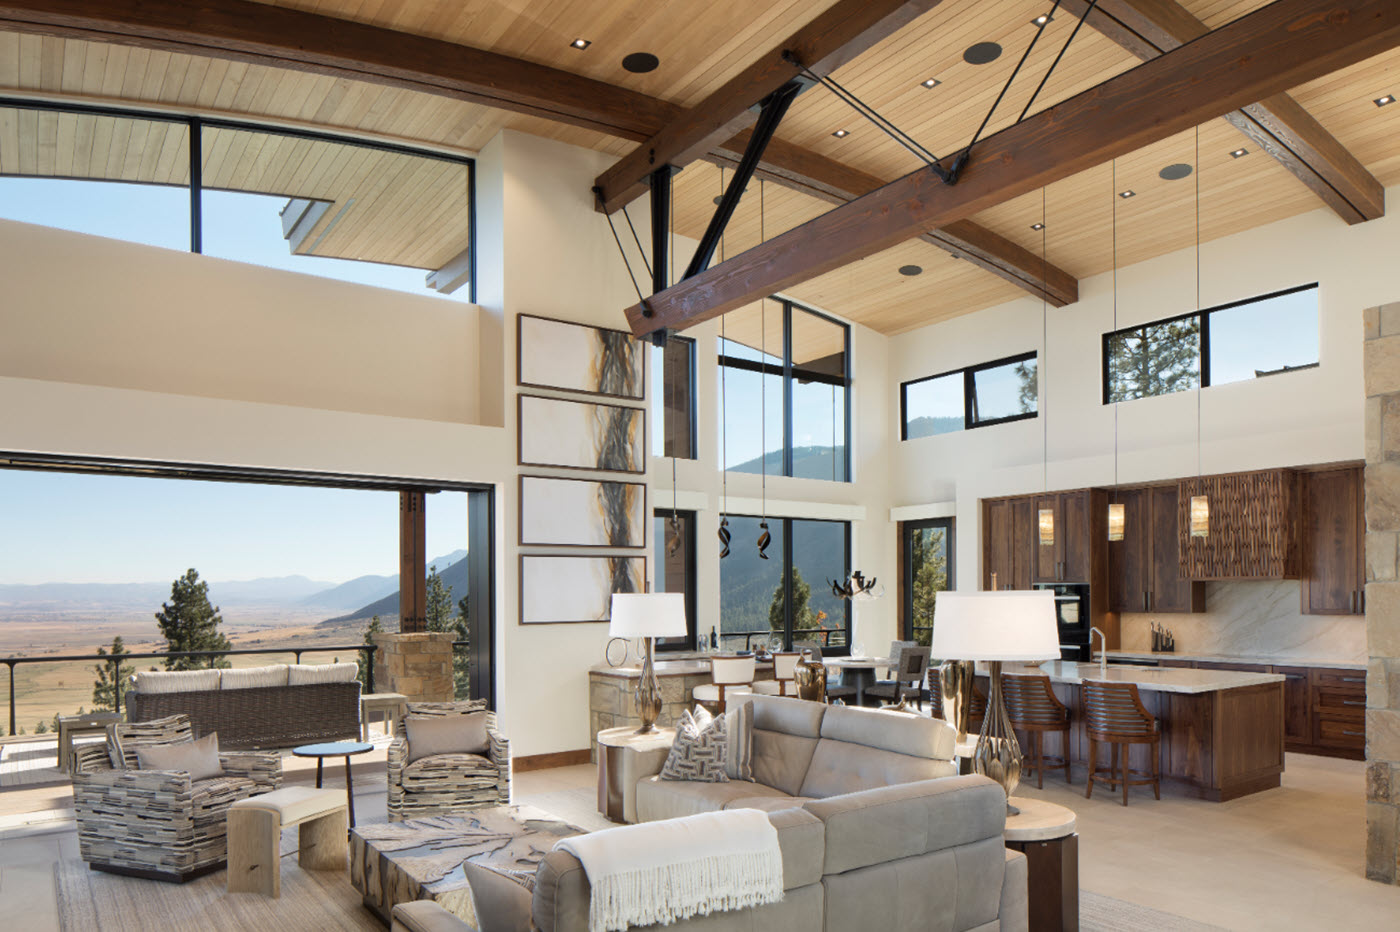 Open Concept Living Room and Kitchen with Contoured Ceilings